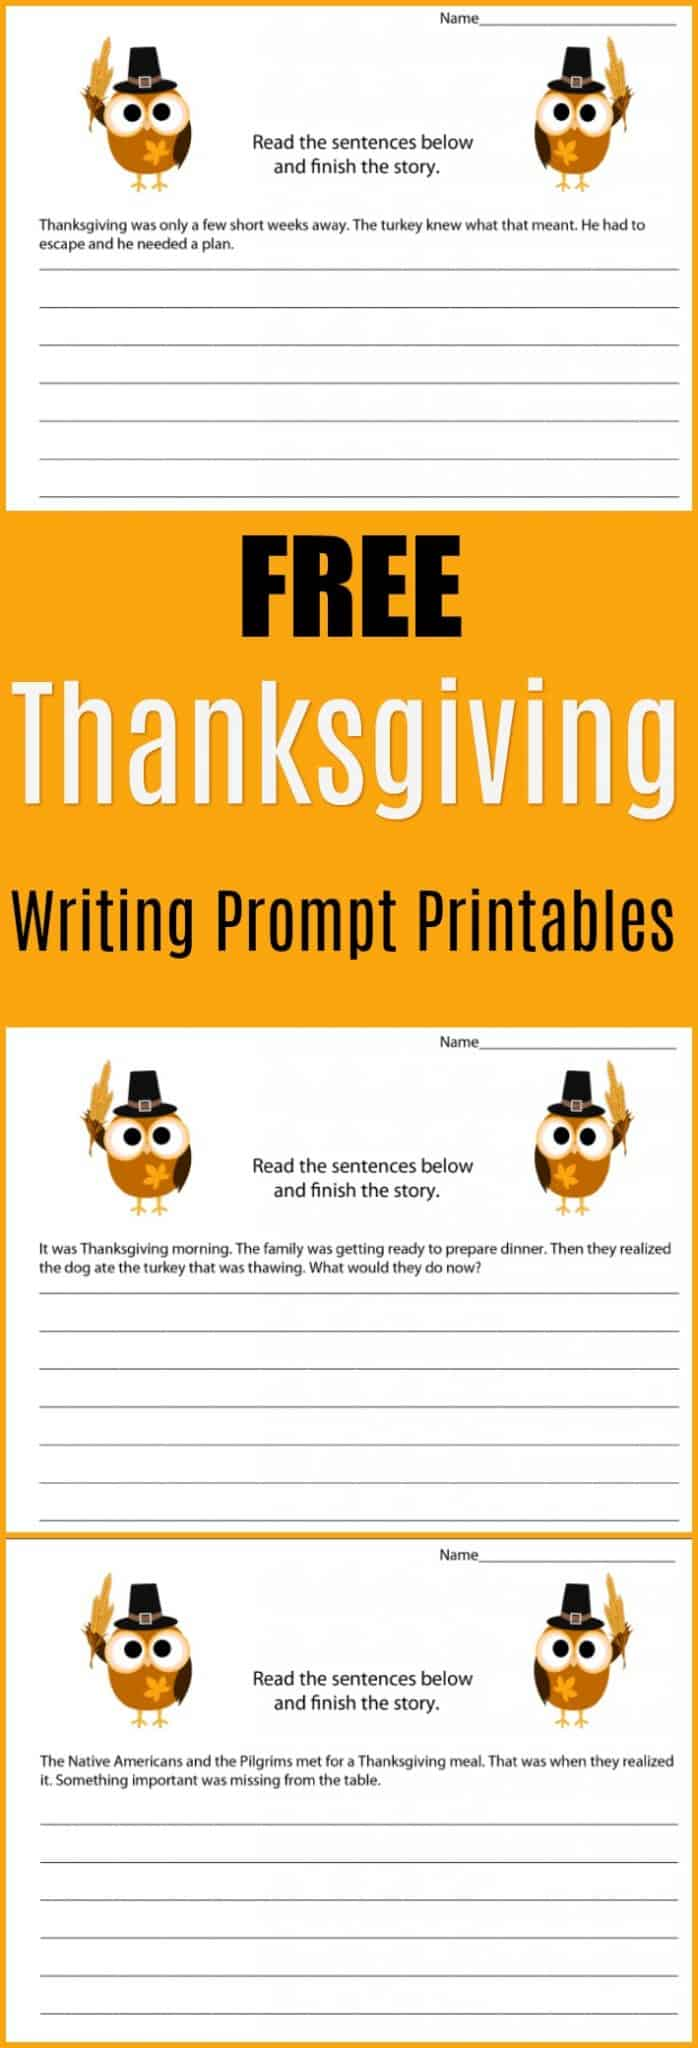 Free Thanksgiving Writing Prompt Printables - Get kids writing stories with these fun Thanksgiving writing prompts. The free printables are perfect for a classroom Thanksgiving project or for a homeschool Thanksgiving writing assignment. They would also make a fun holiday writing project. - #writing #writingprompt #holiday #printable #freeprintable #education #edchat #homeschool #homeschooling #thanksgiving